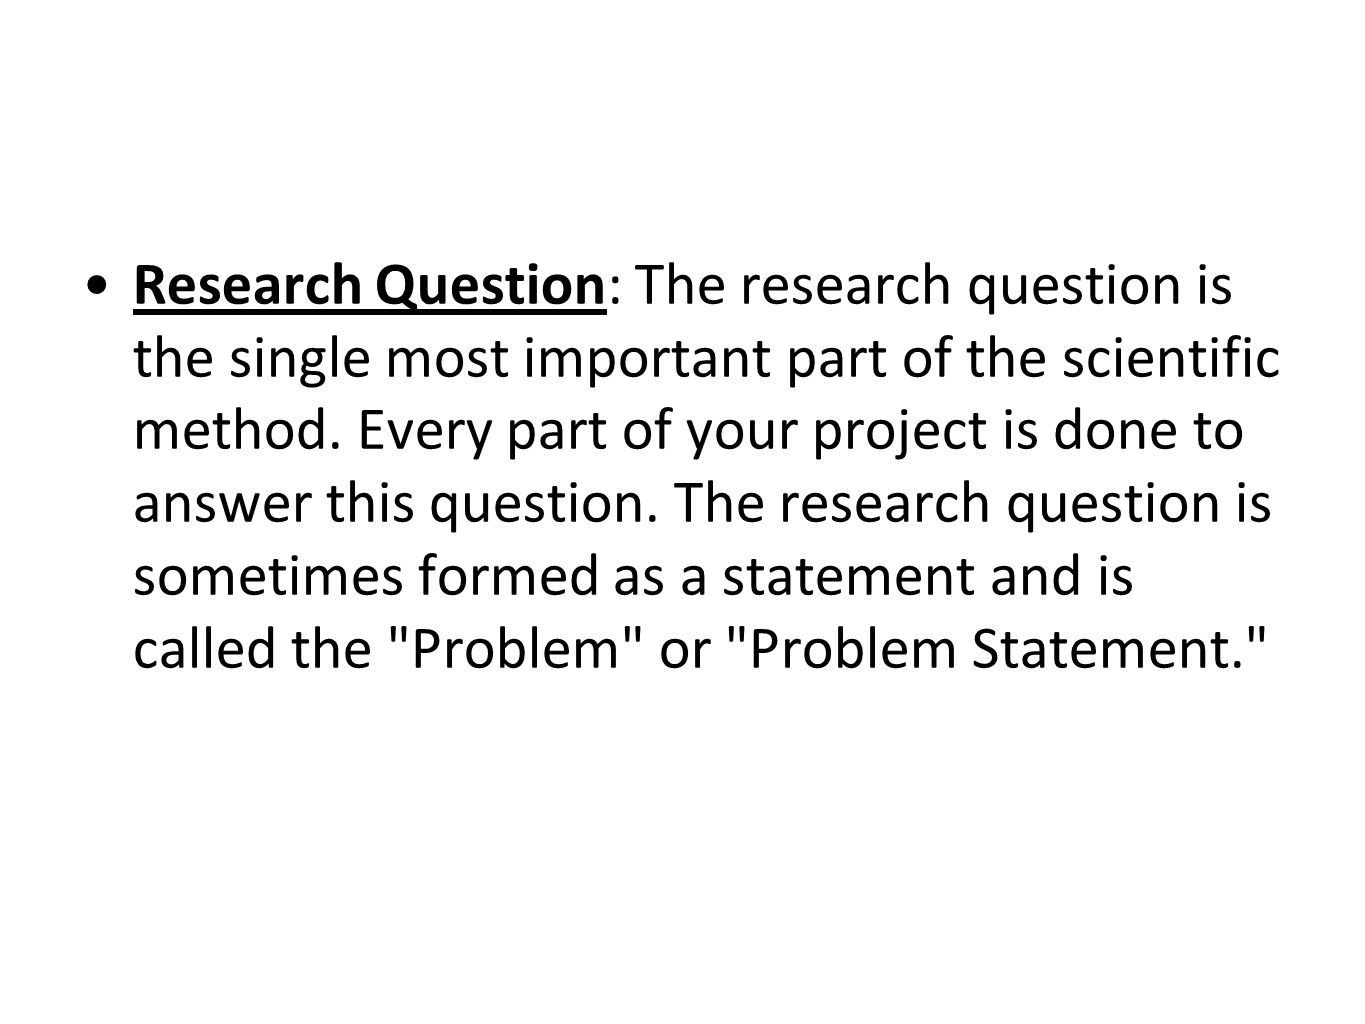 Short Statement of the Problem Give a short summary of the research problem that you have identified – not more than 15 to 20 lines.